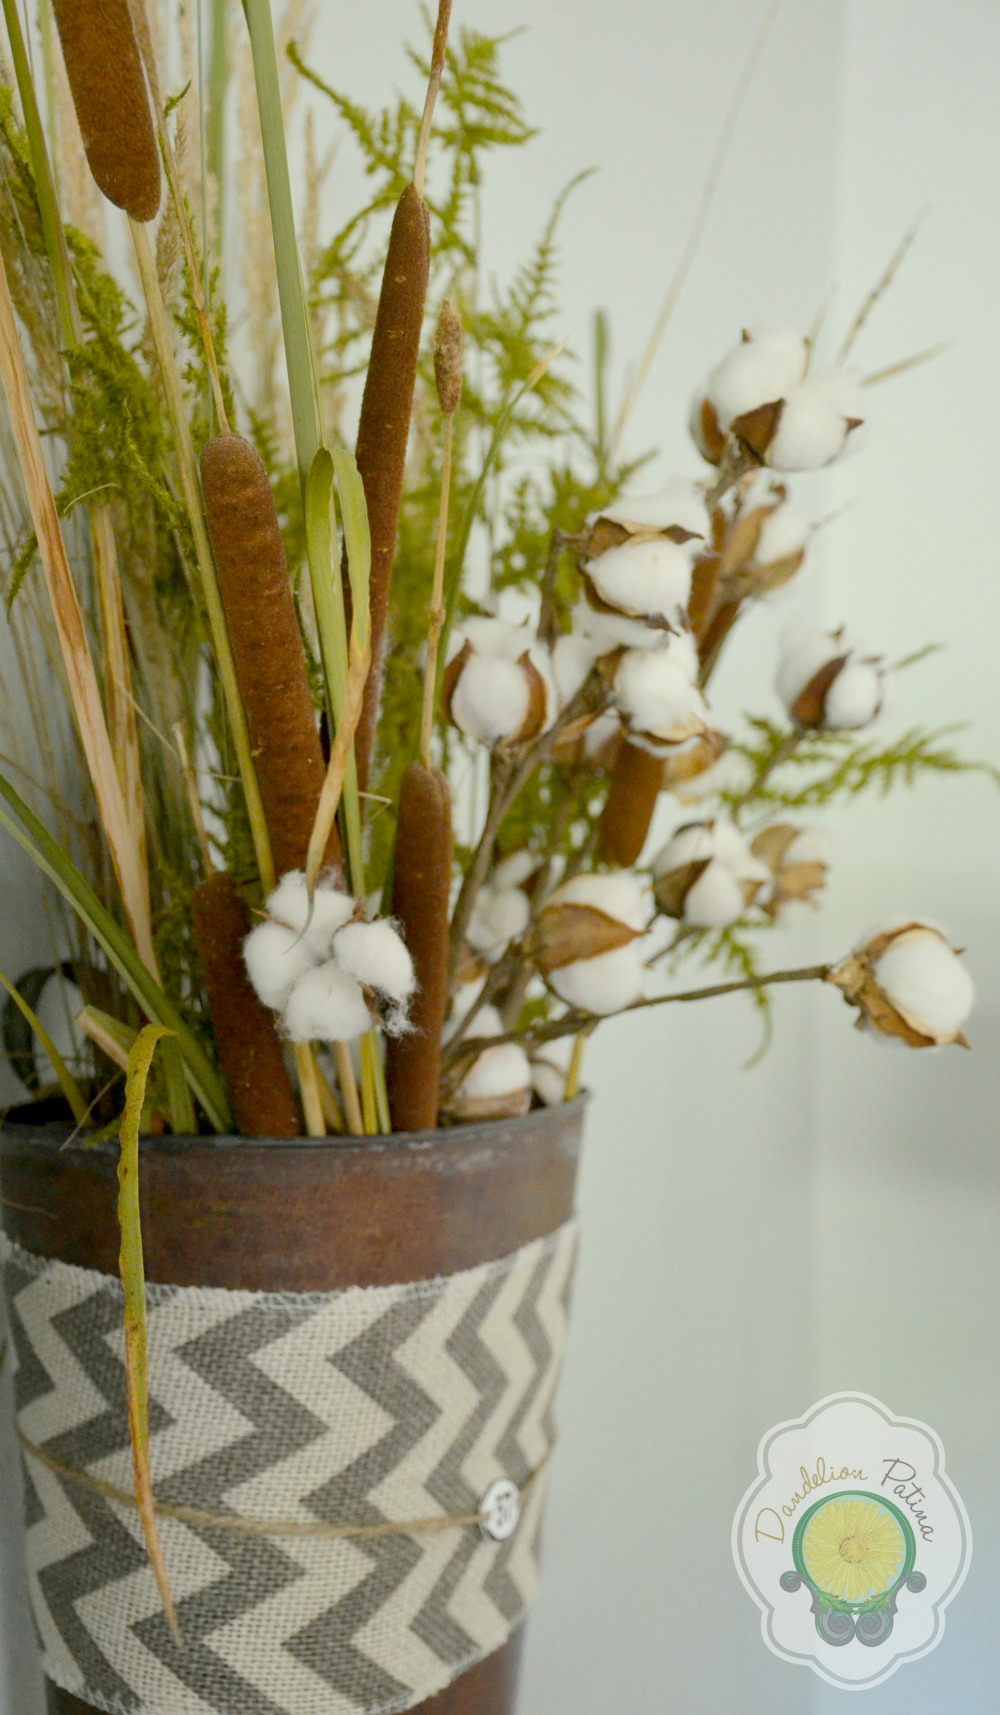 rusty buckets with cattails, cotton boll and ferns